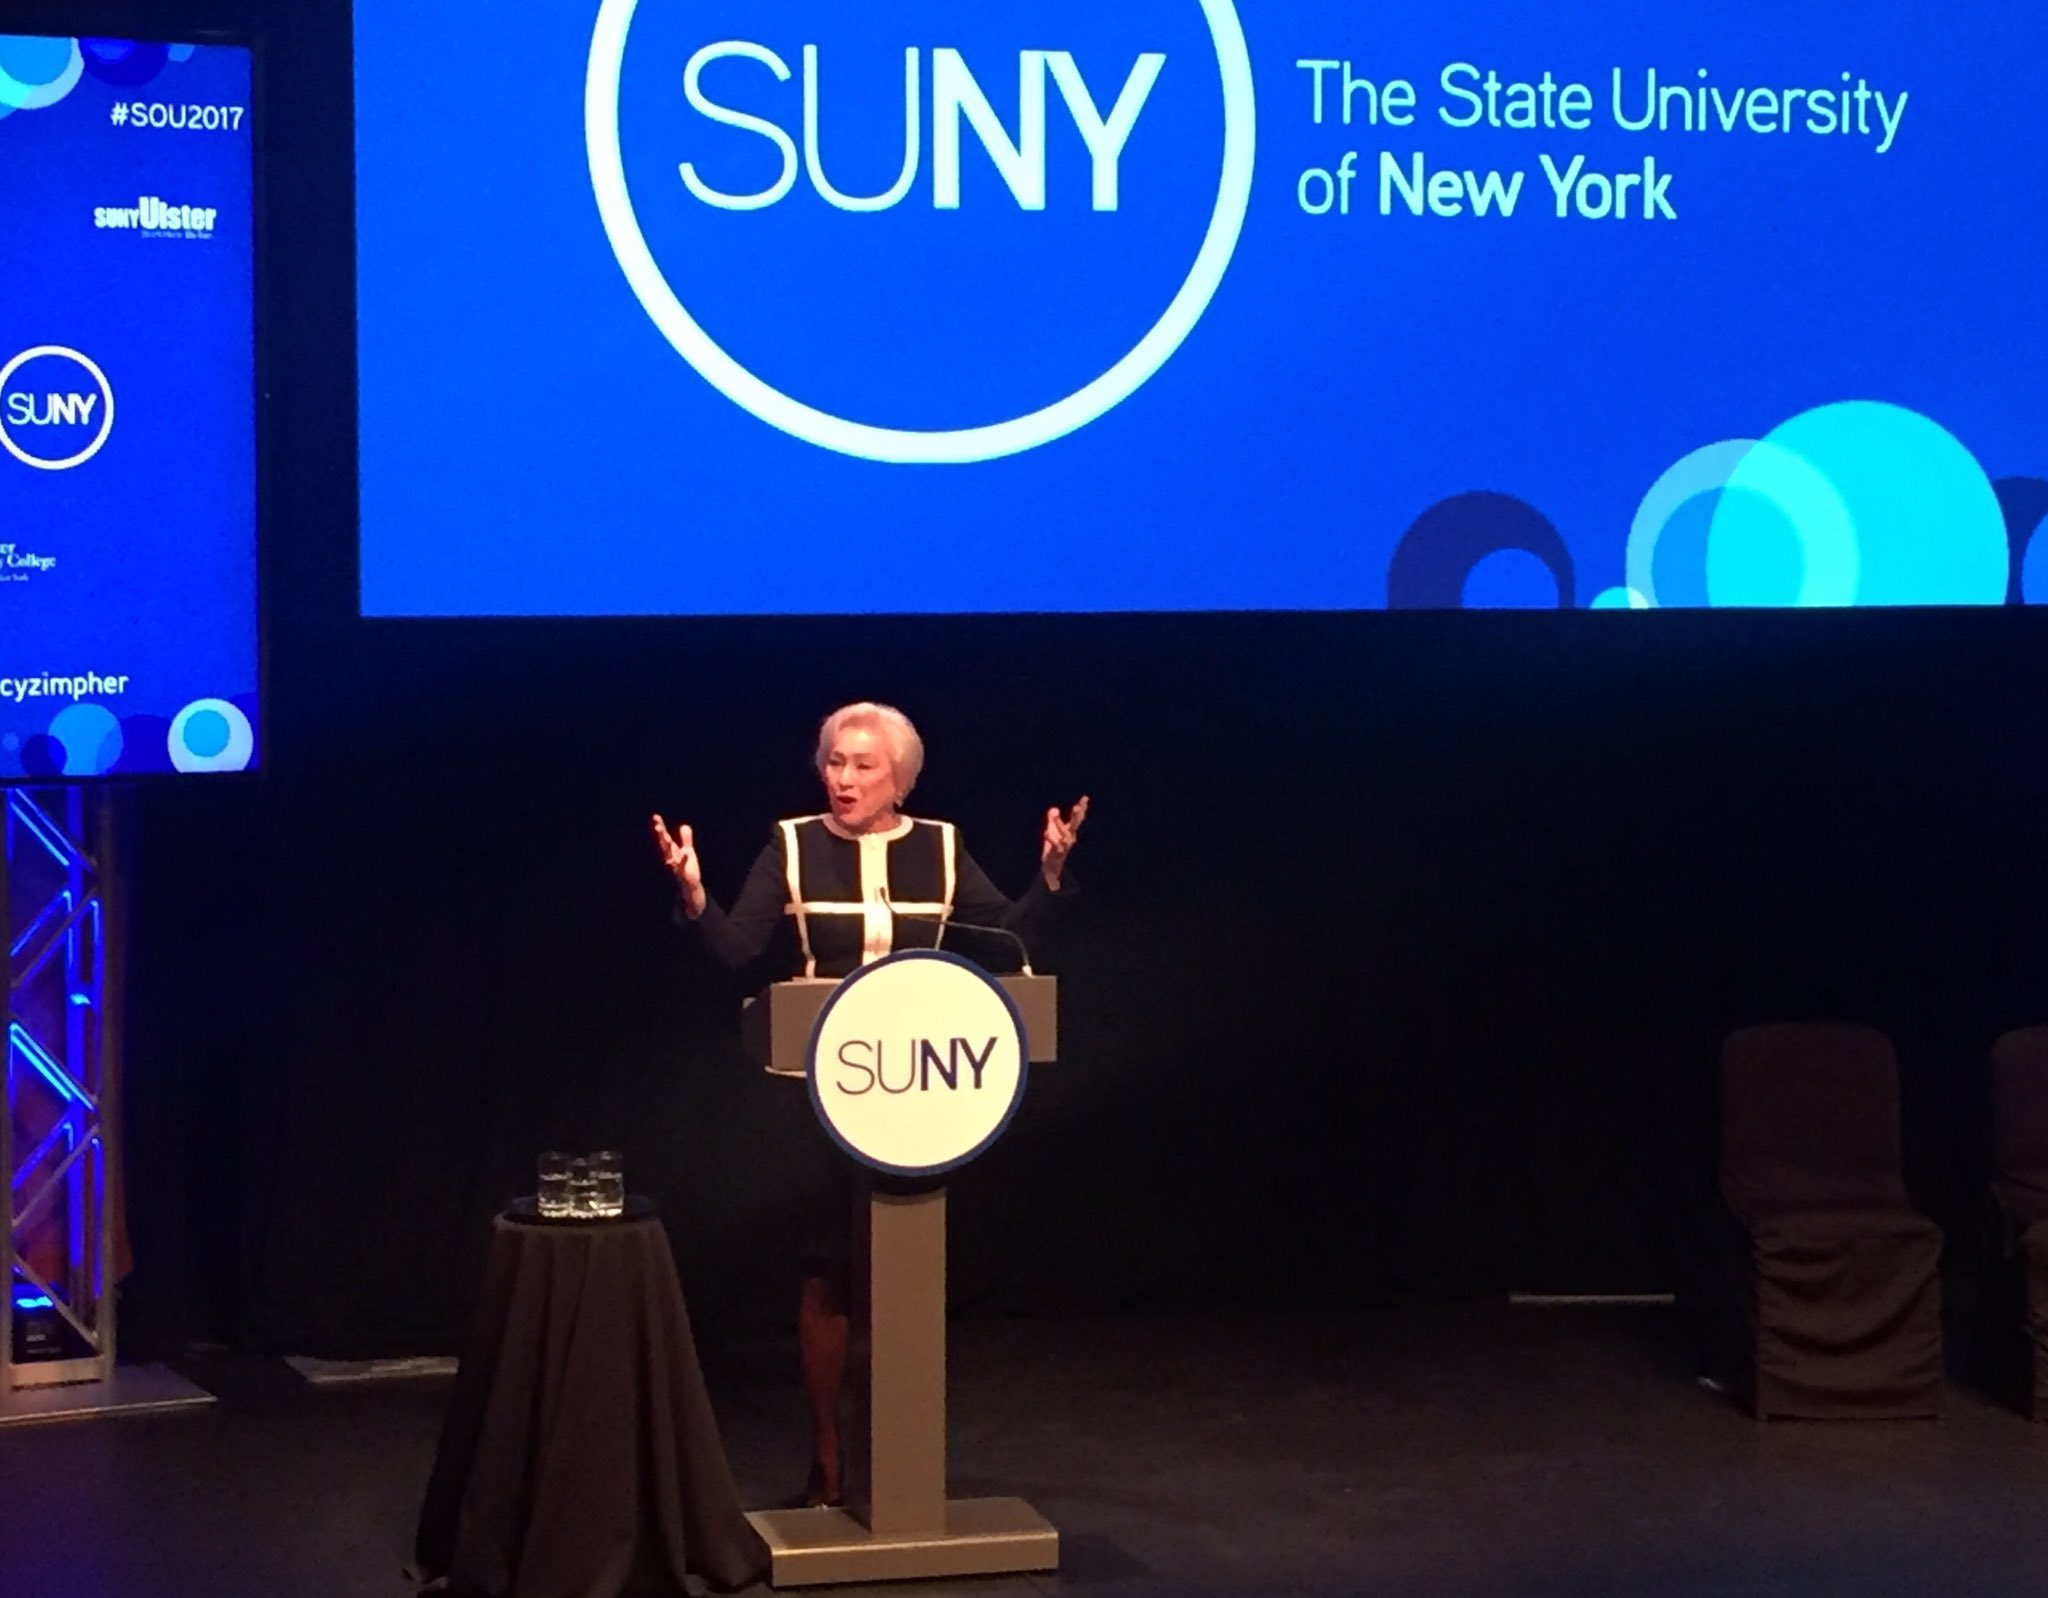 This is Nancy Zimpher's last State of the University address as chancellor of the 64-campus @SUNY system #SOU2017 https://t.co/zVHLet3dYE